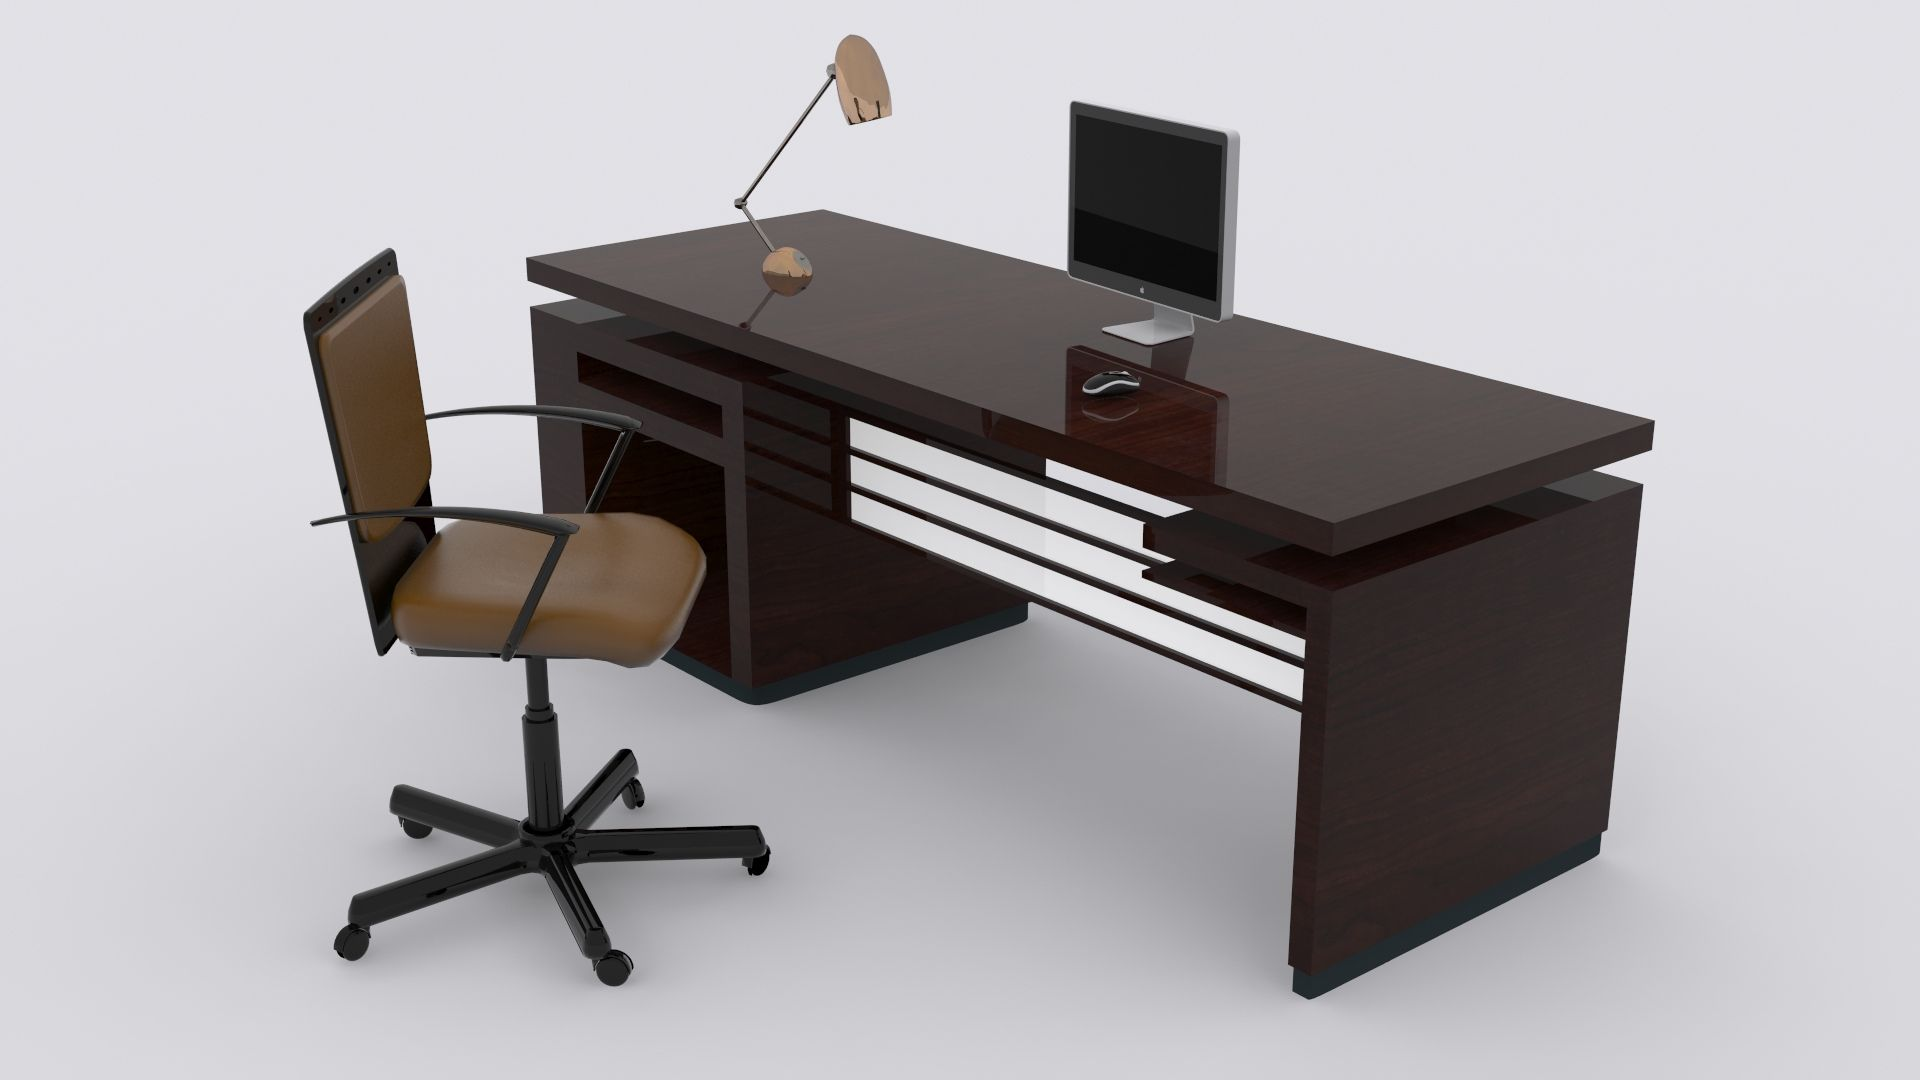 Office Desk 3d Max Model Free Download Diy Stand Up Desk Check More At Http Www Sewcraftyjenn Com Office Desk 3d Max Model Free Download